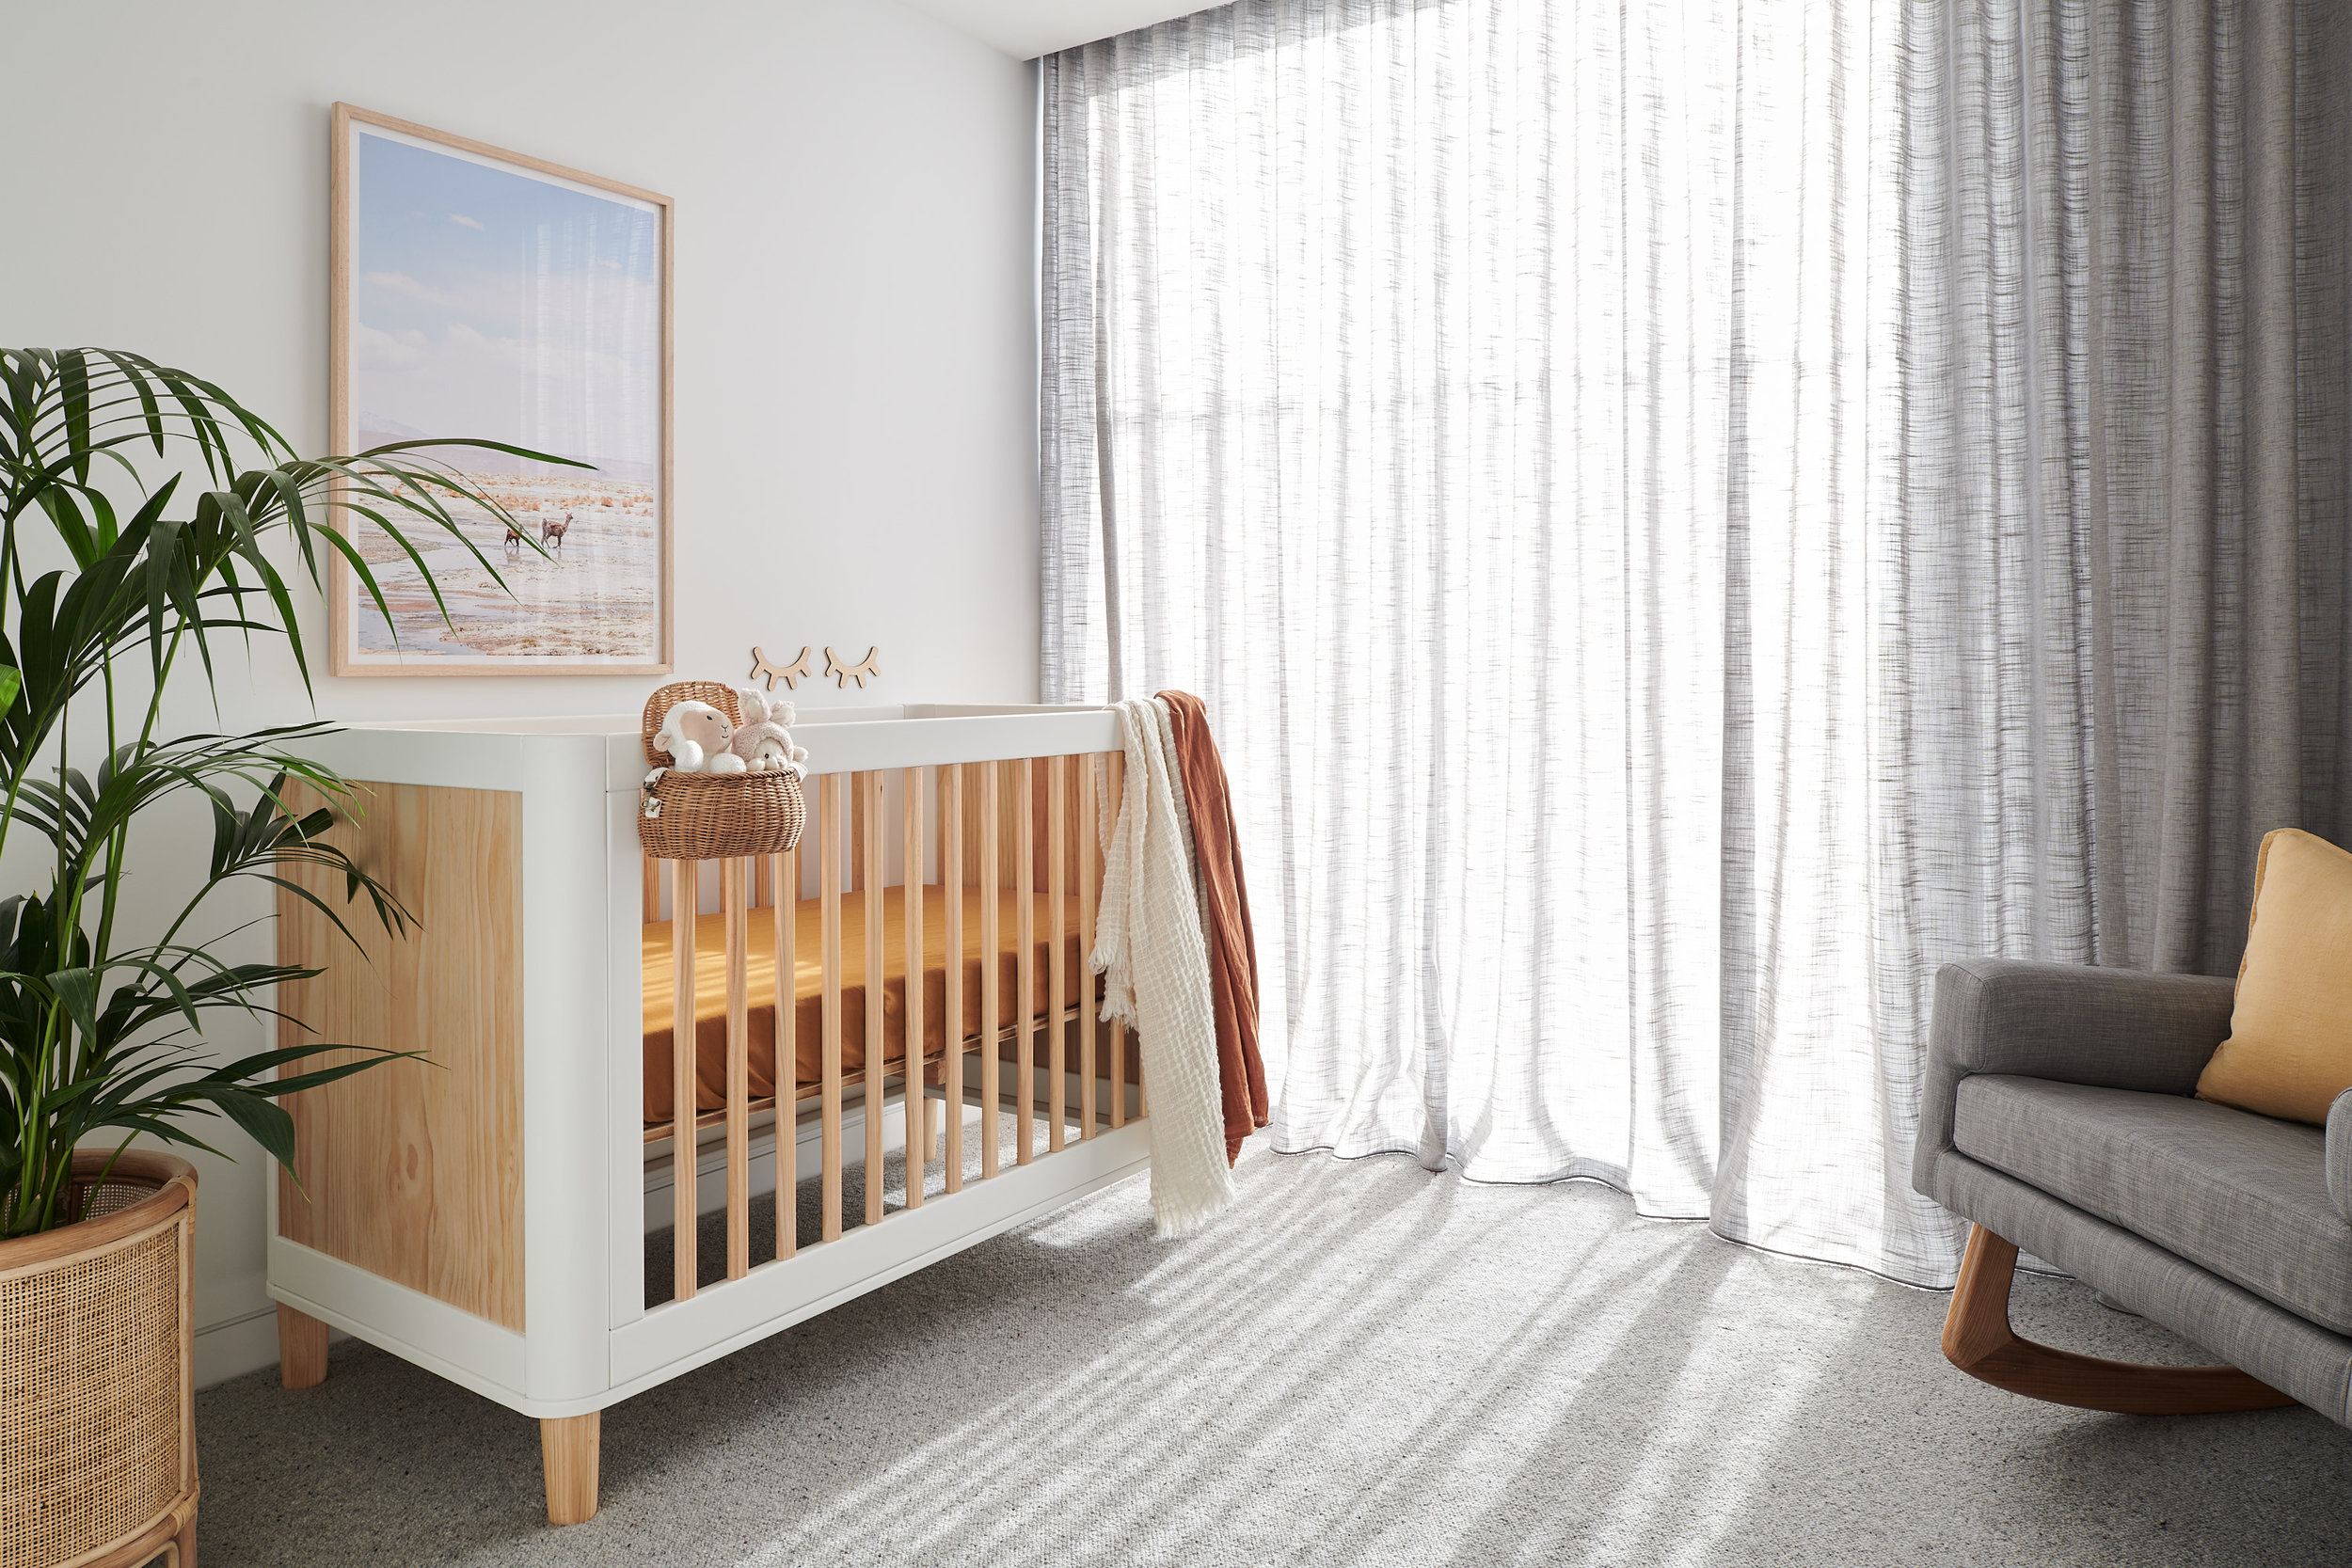 - ROOM REVEAL - NURSERY